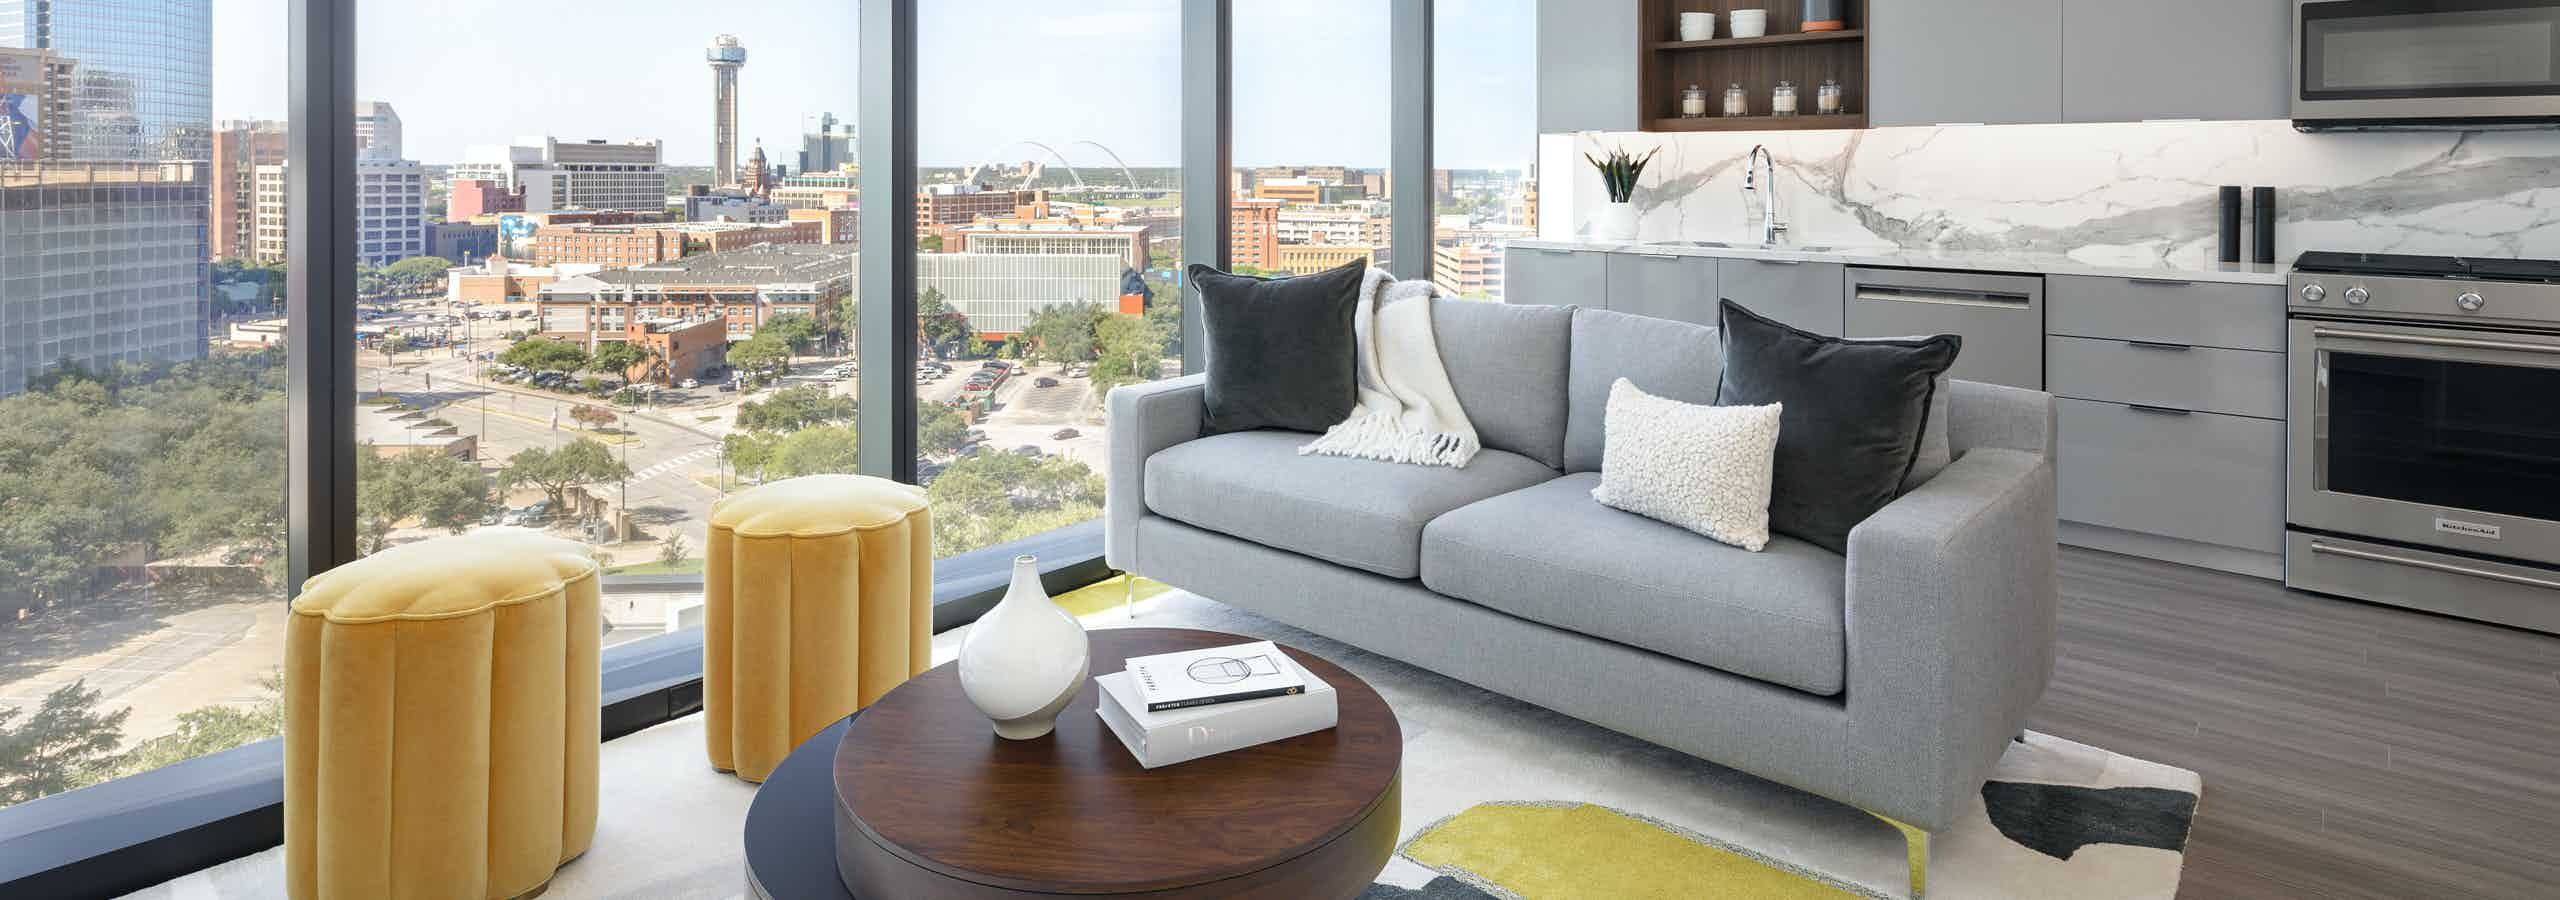 Residences with sweeping views of Dallas